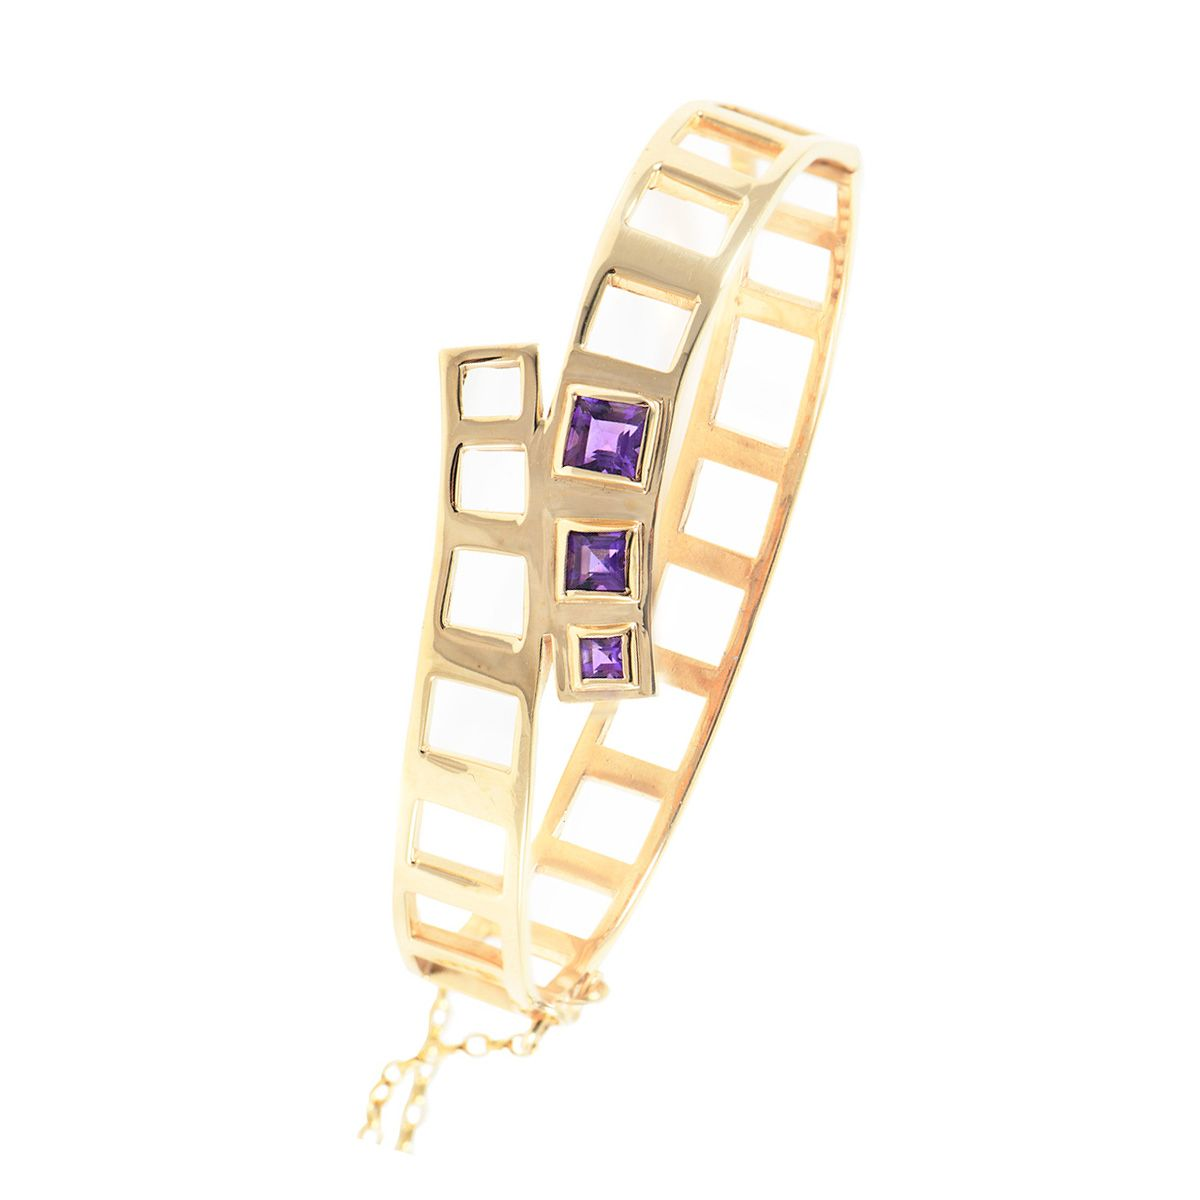 9ct Yellow Gold Amethyst Stone Set Hinged/Clasp Bangle Size 18cm